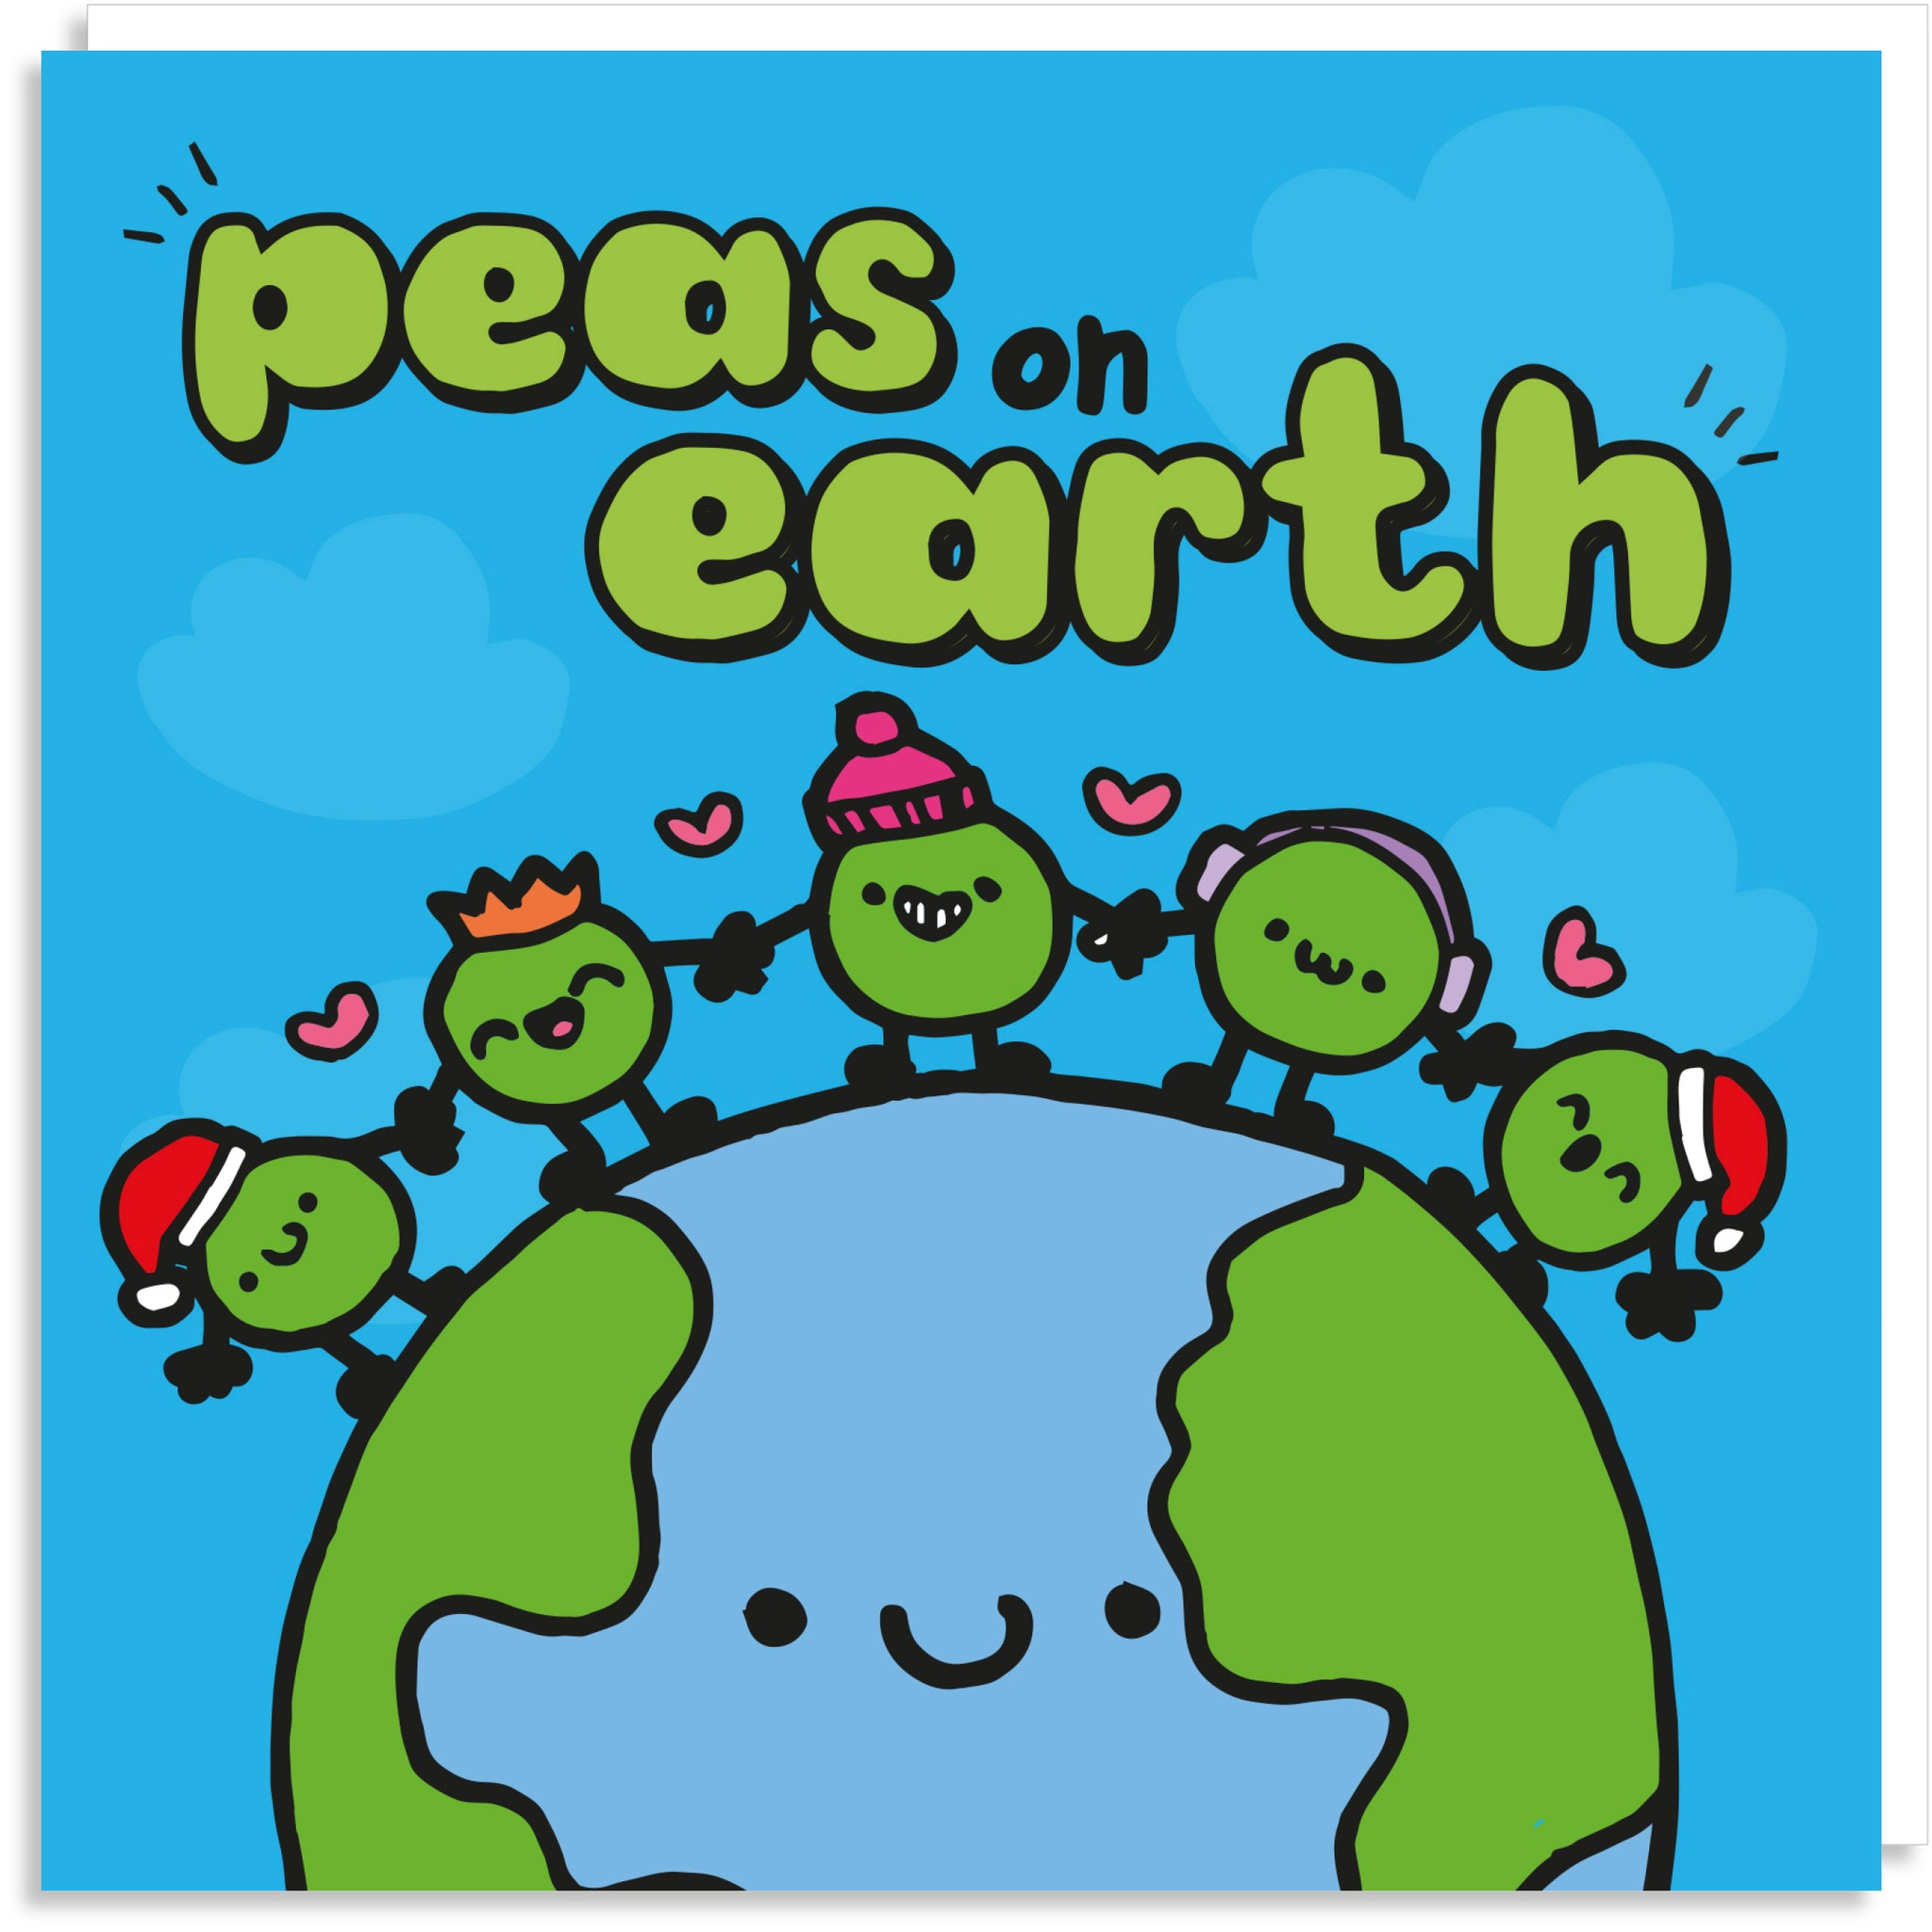 Peas on earth Christmas card